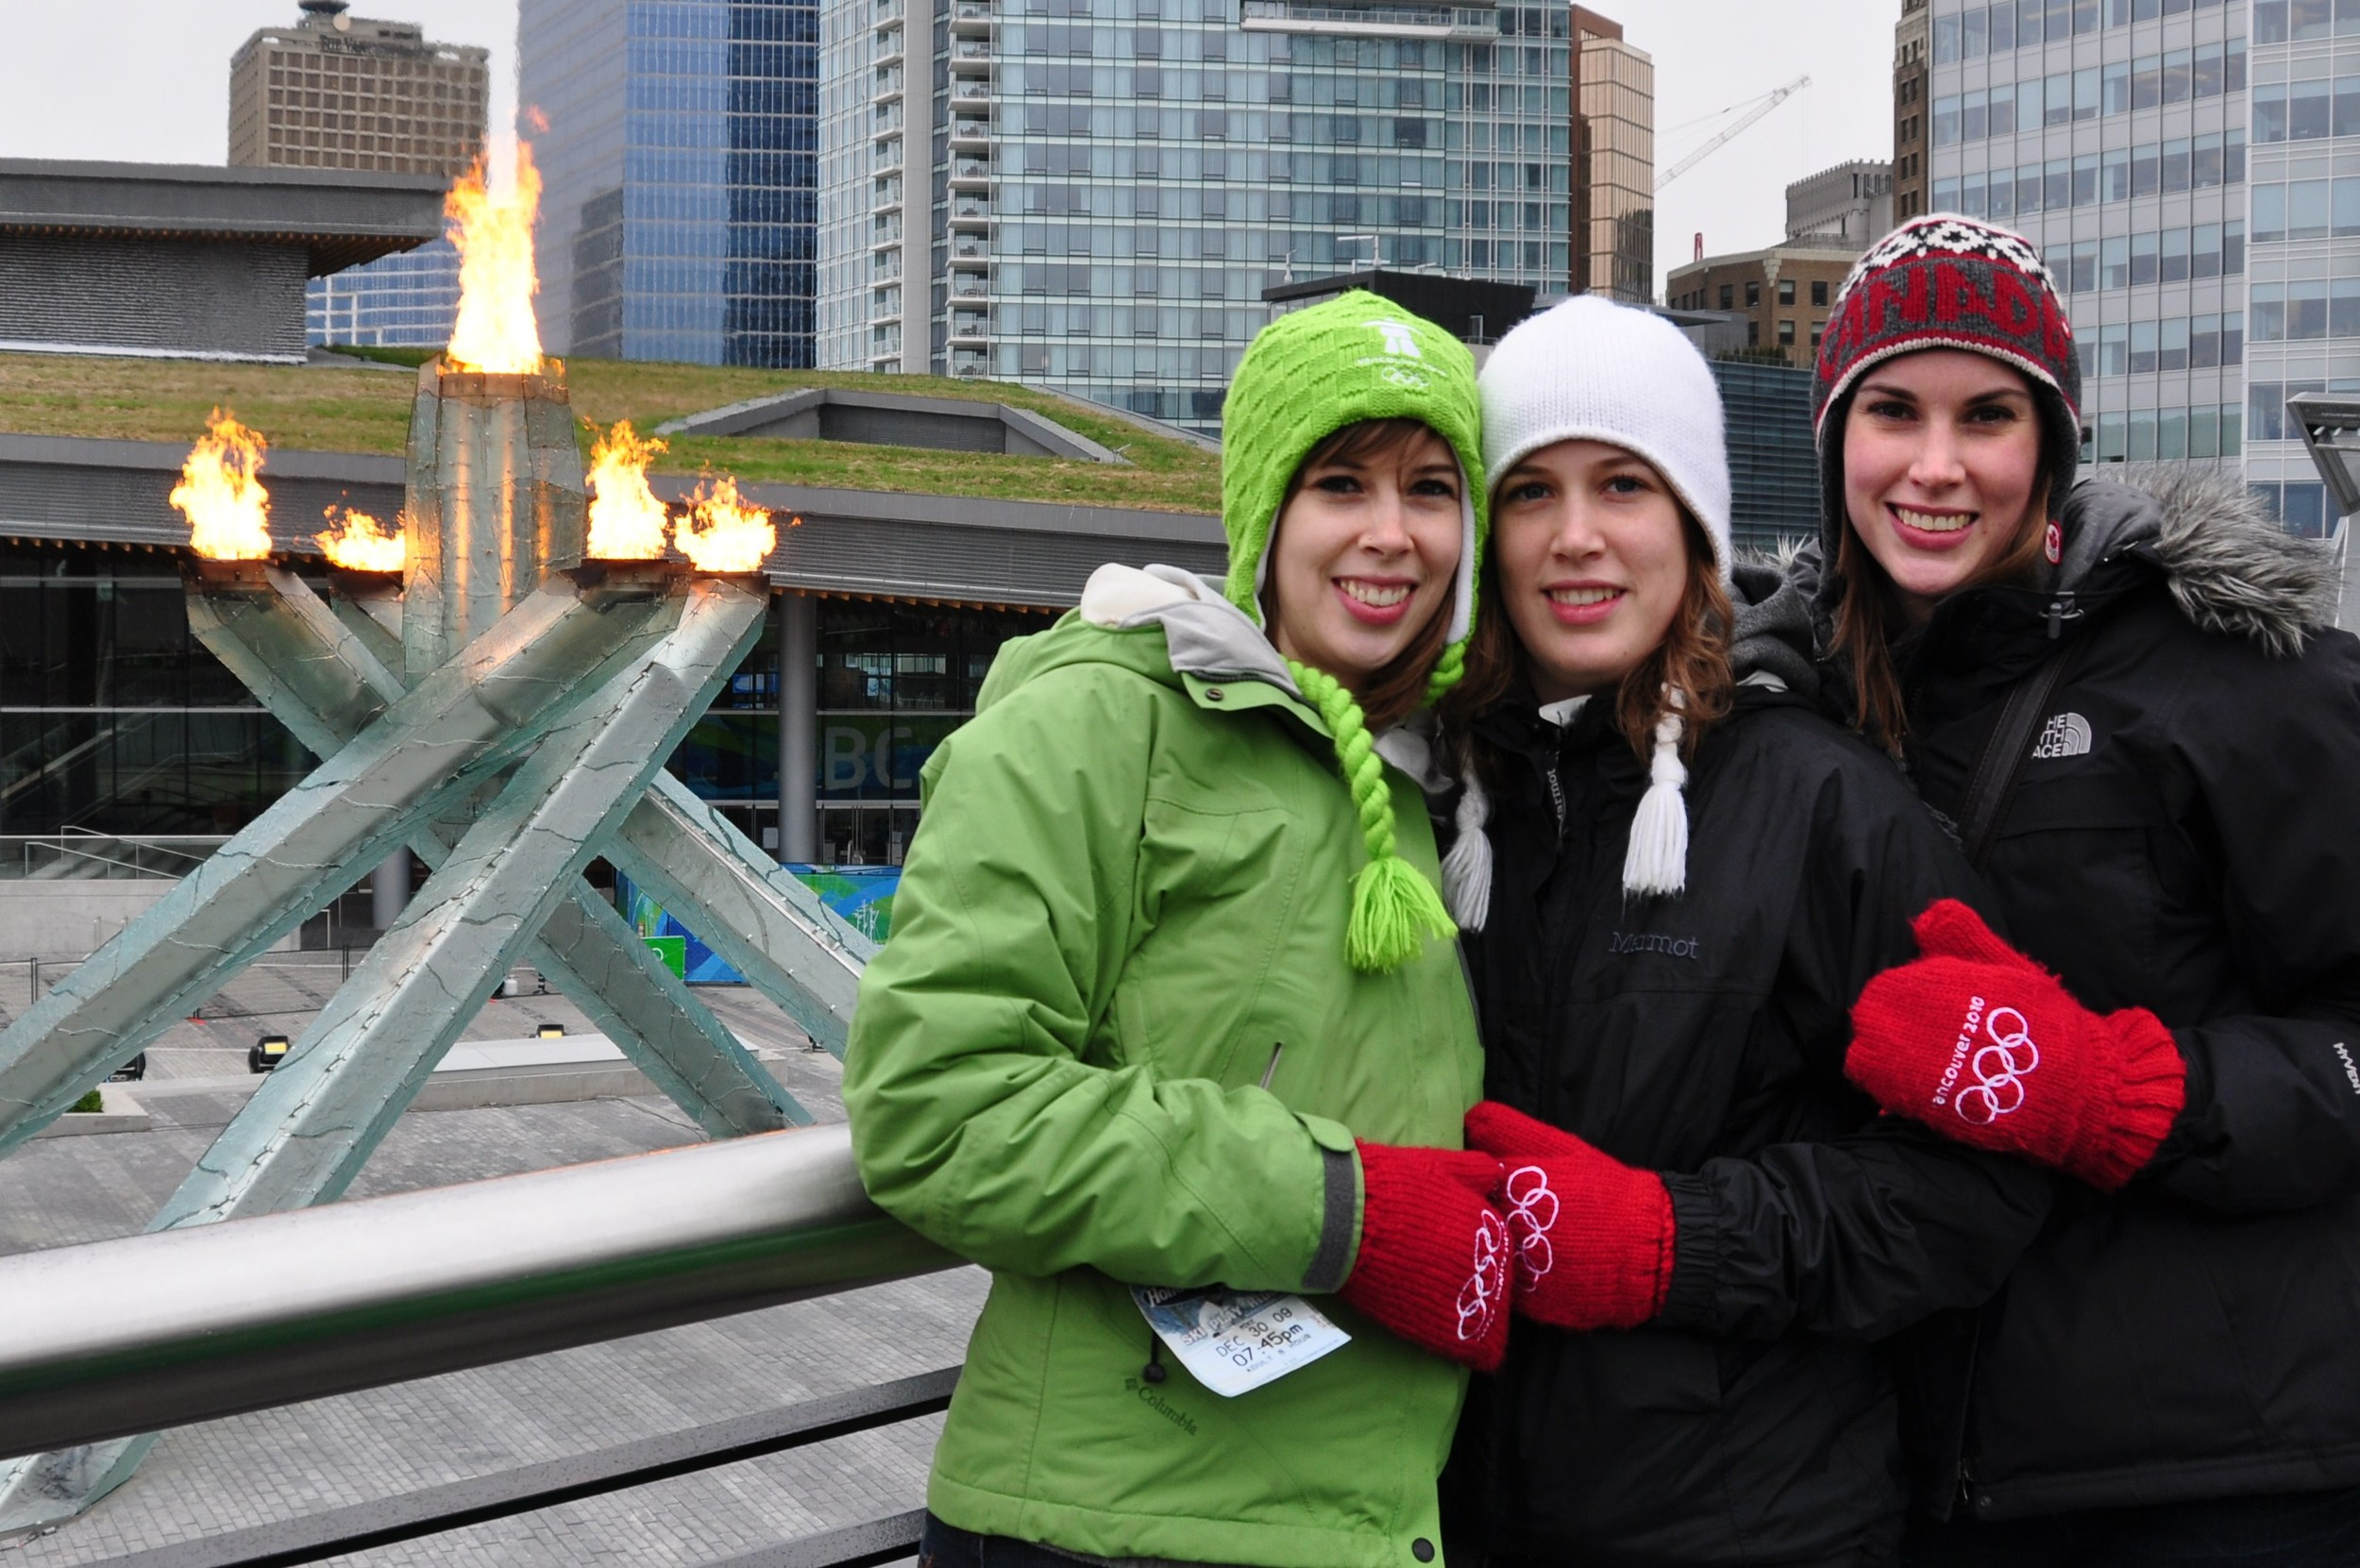 During the Vancouver 2010 Winter Olympics, my sisters and I were tourists. I want that feeling every weekend.